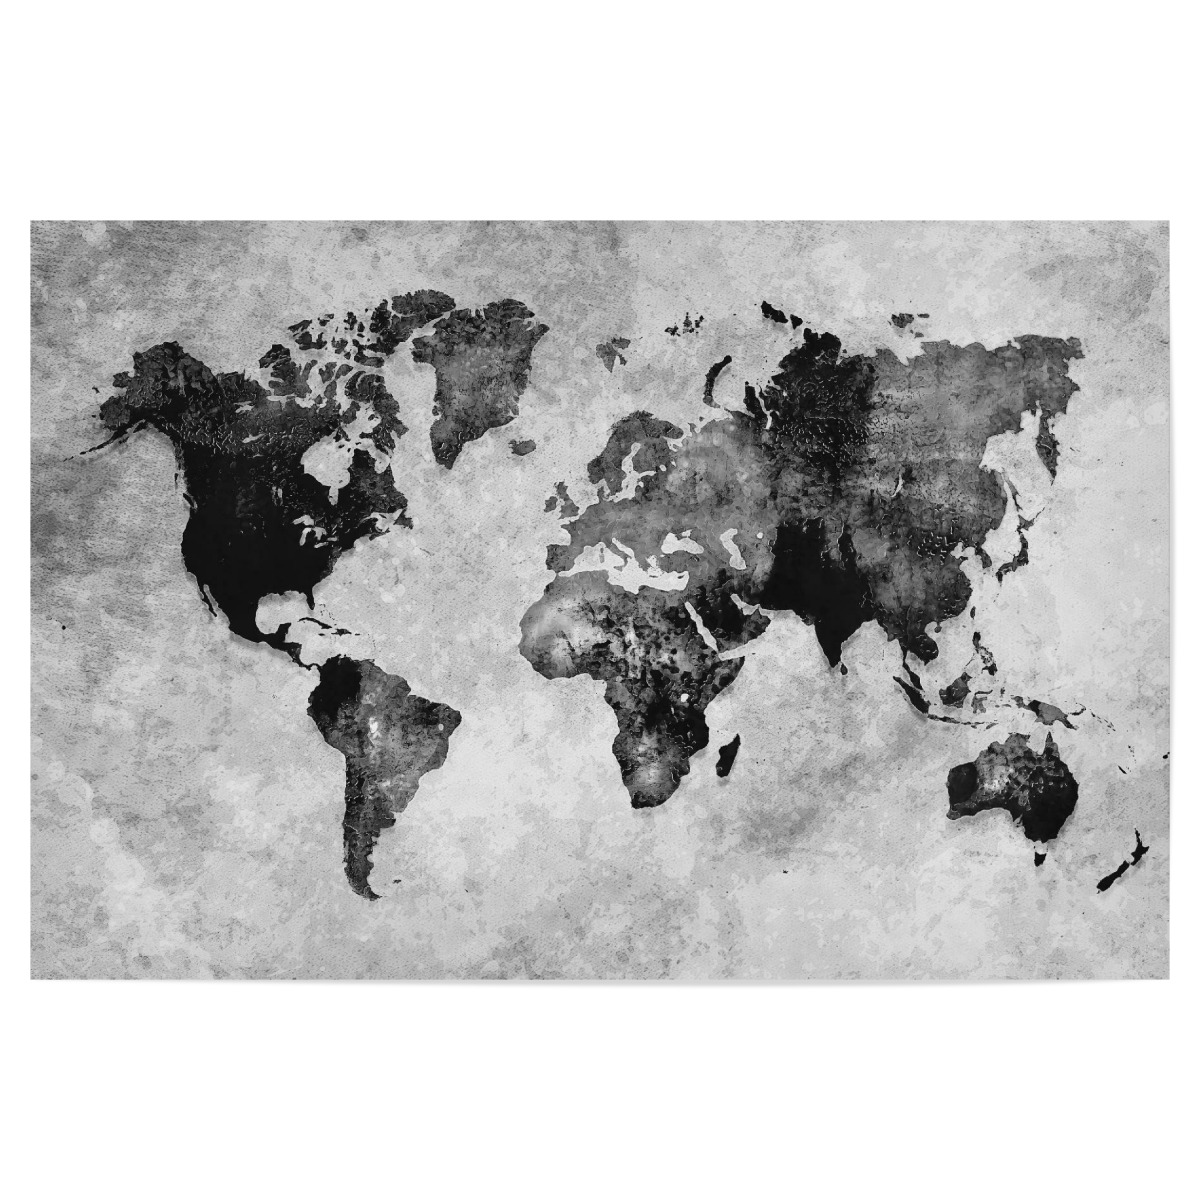 World map black and white als Poster bei artboxONE kaufen